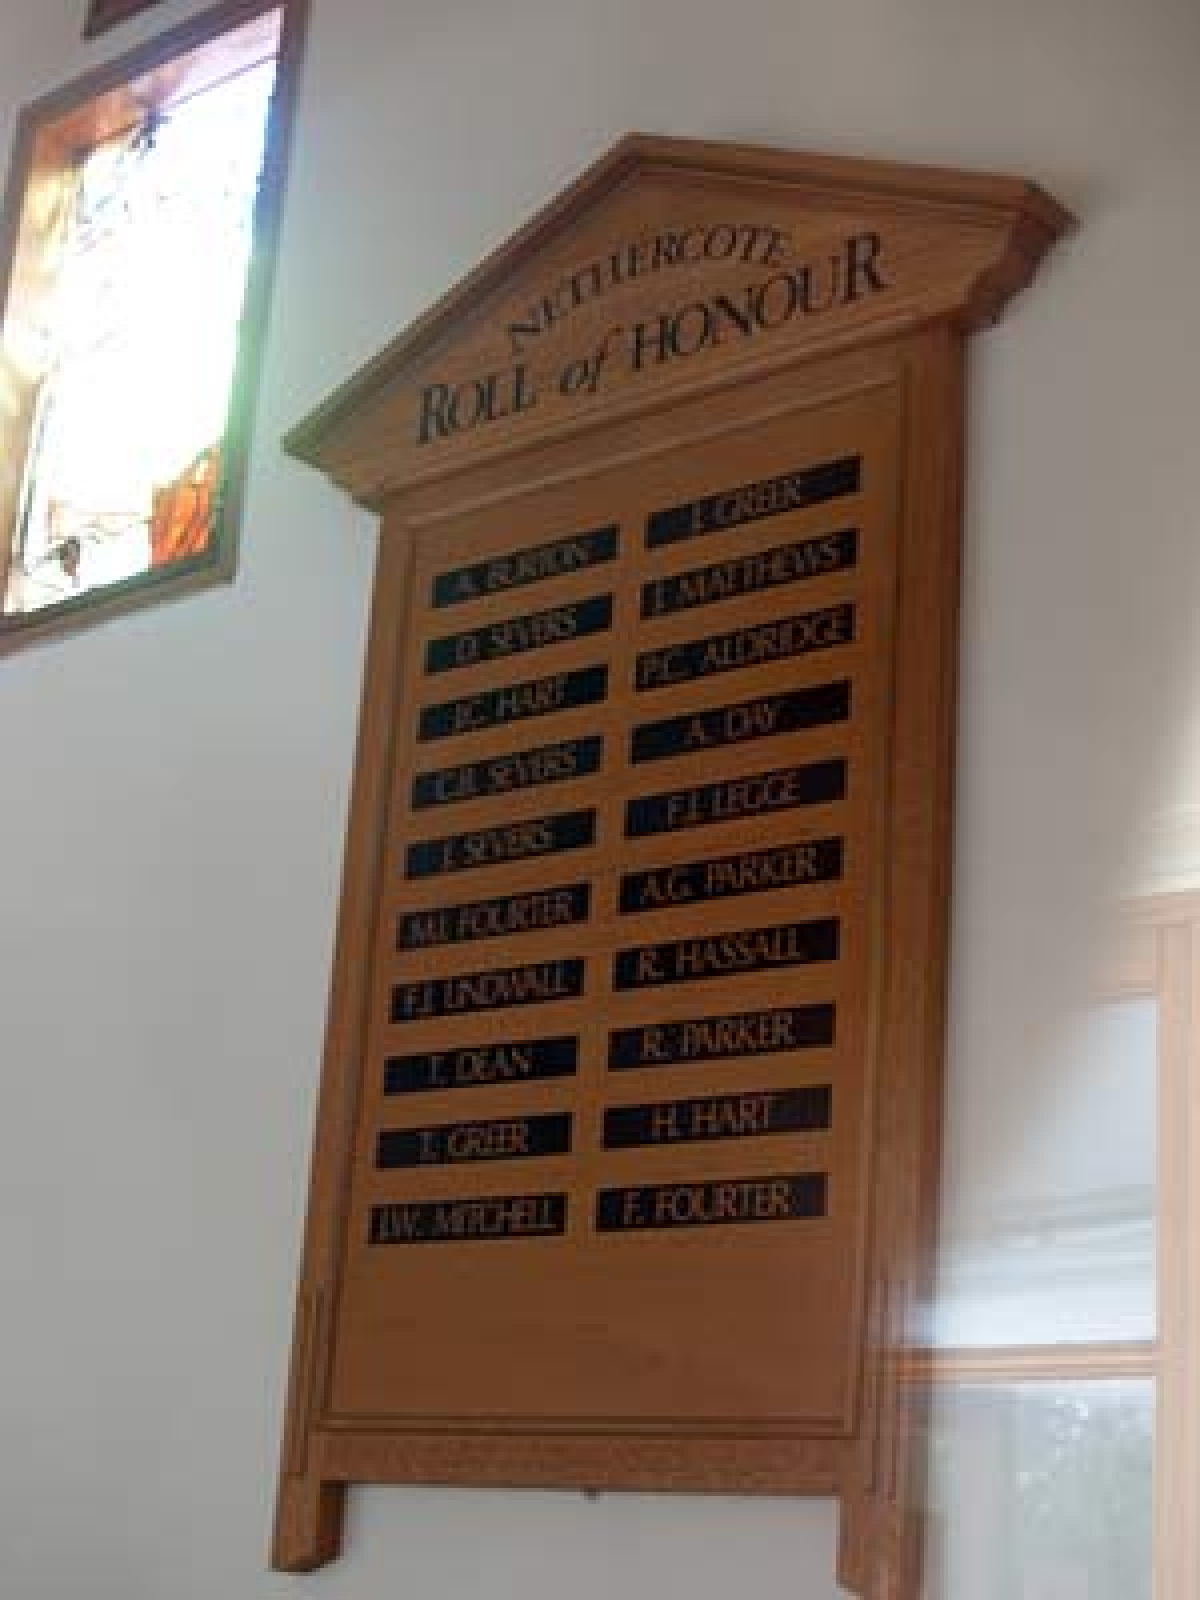 Nethercote Roll of Honour